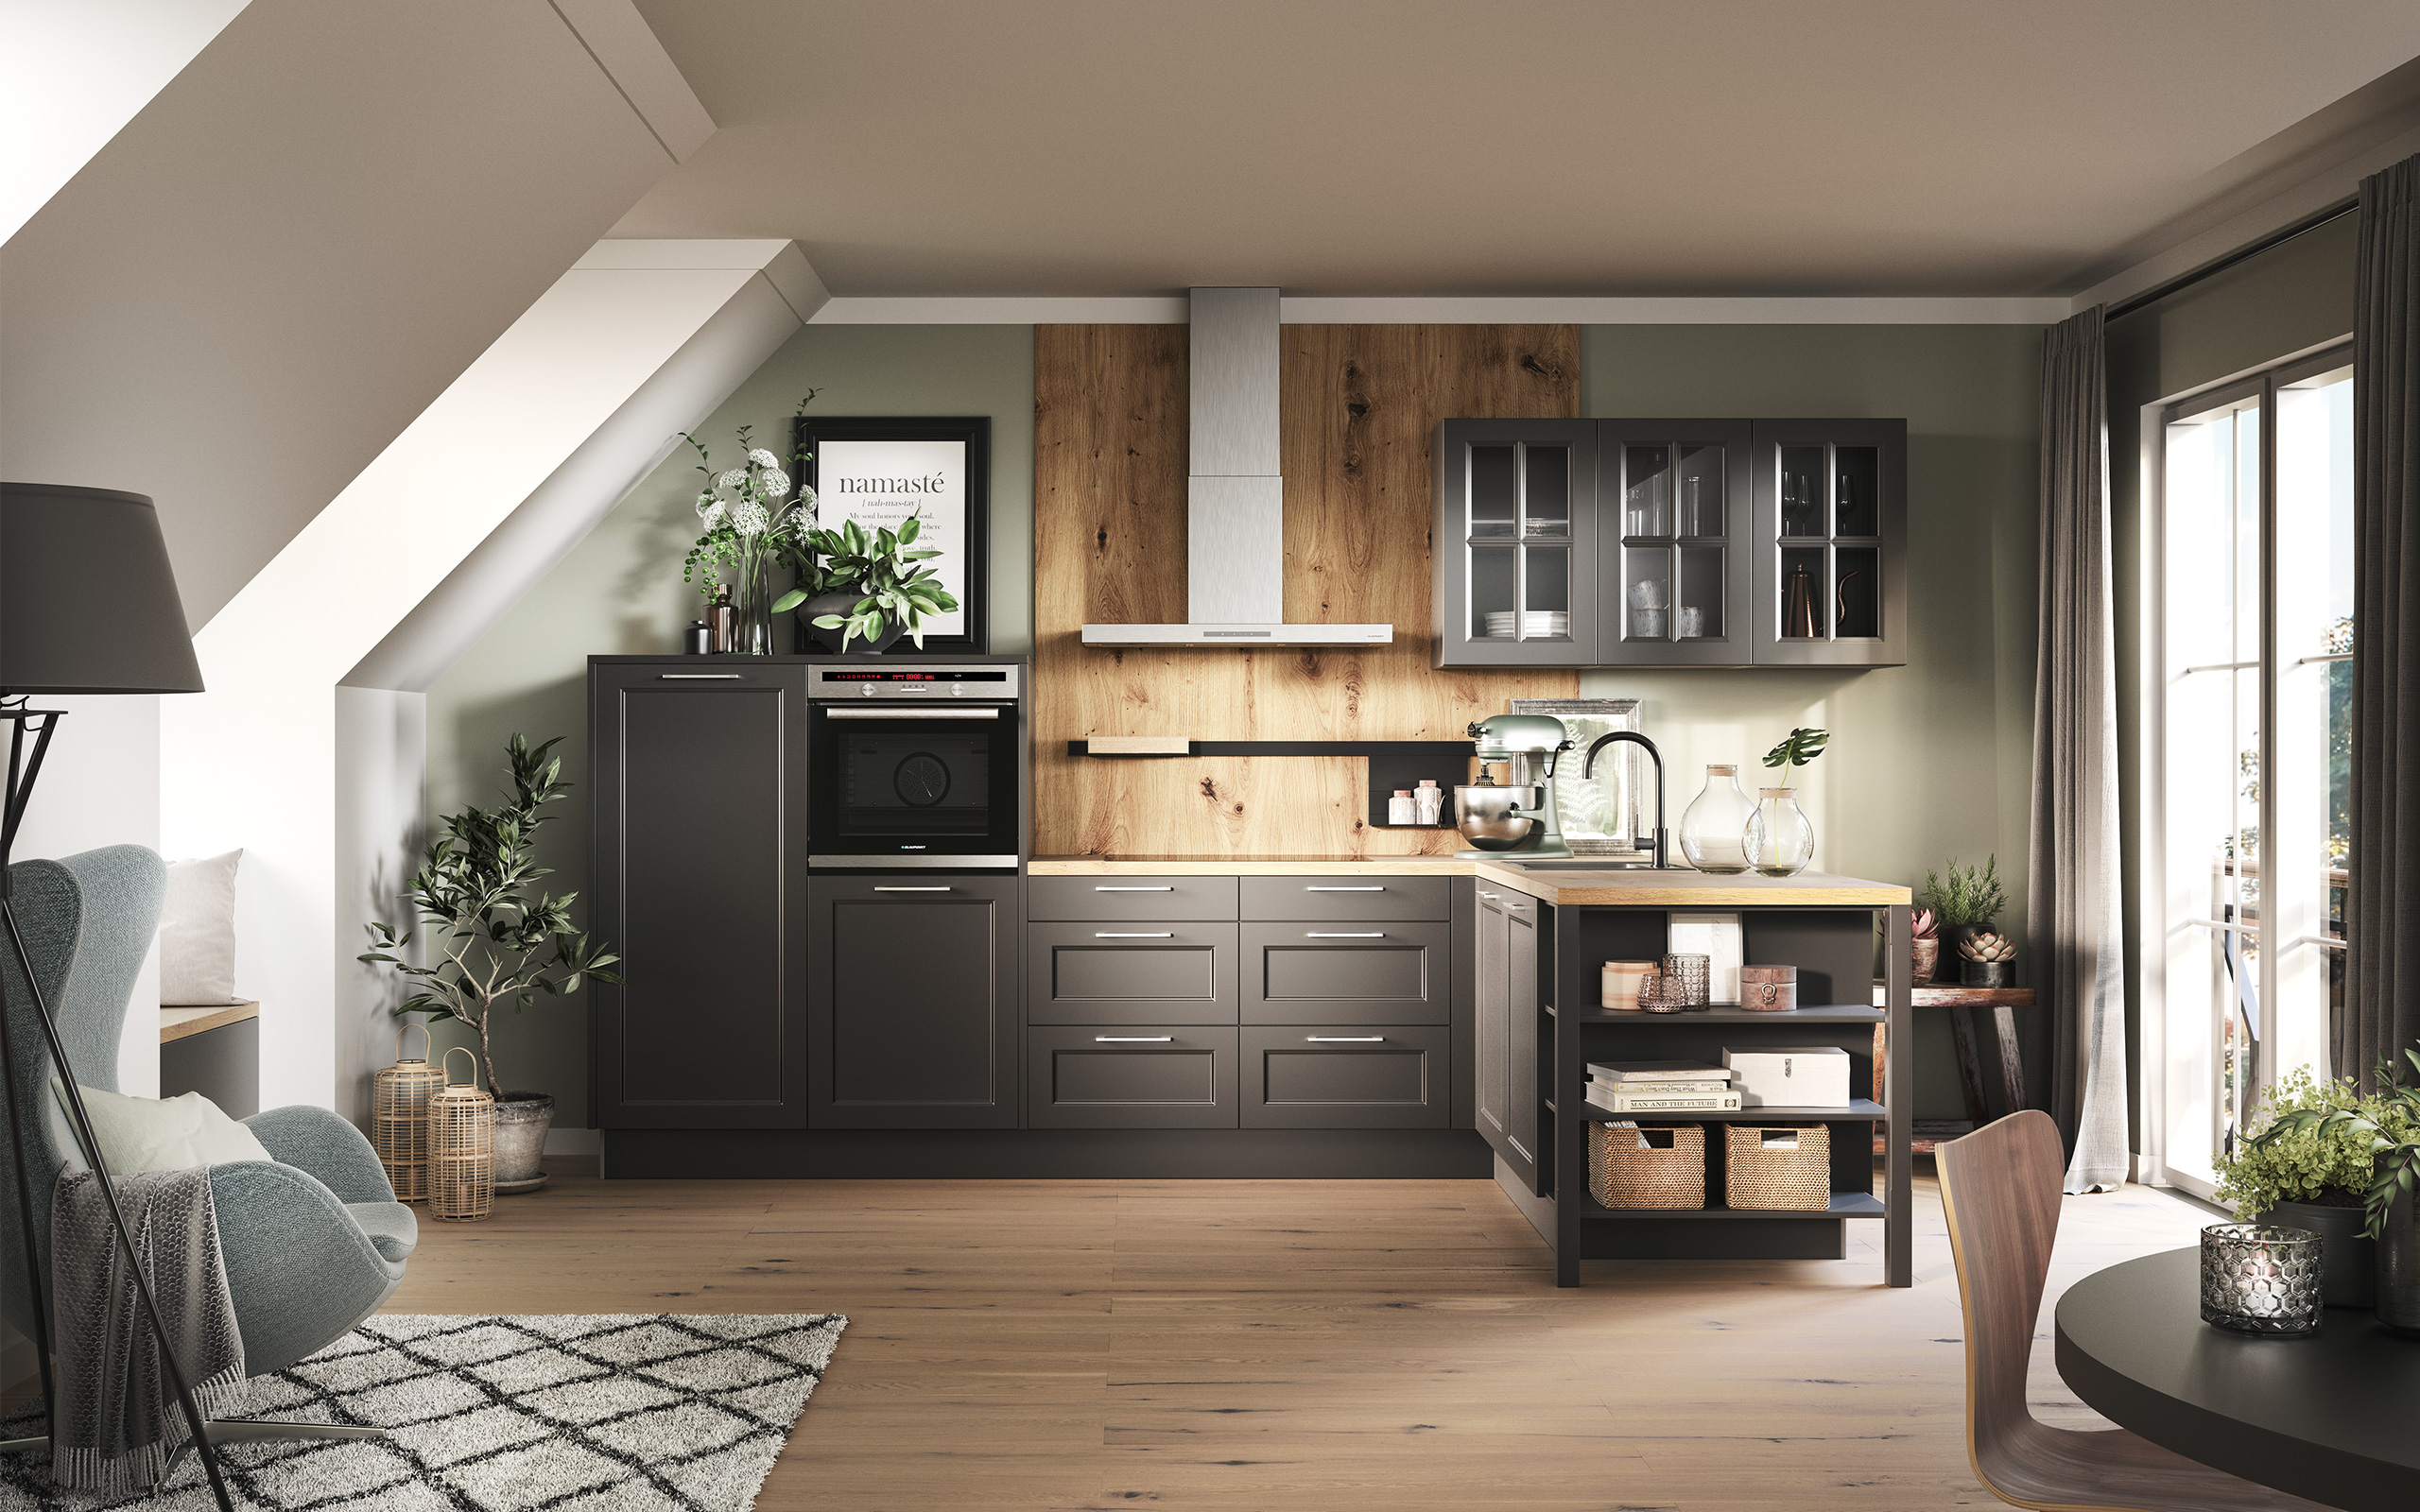 Häcker Küchen Kitchen Germanmade With Love For Detail And Great Devotion To Precision And Accuracy Kitchens Created To Fall In Love With